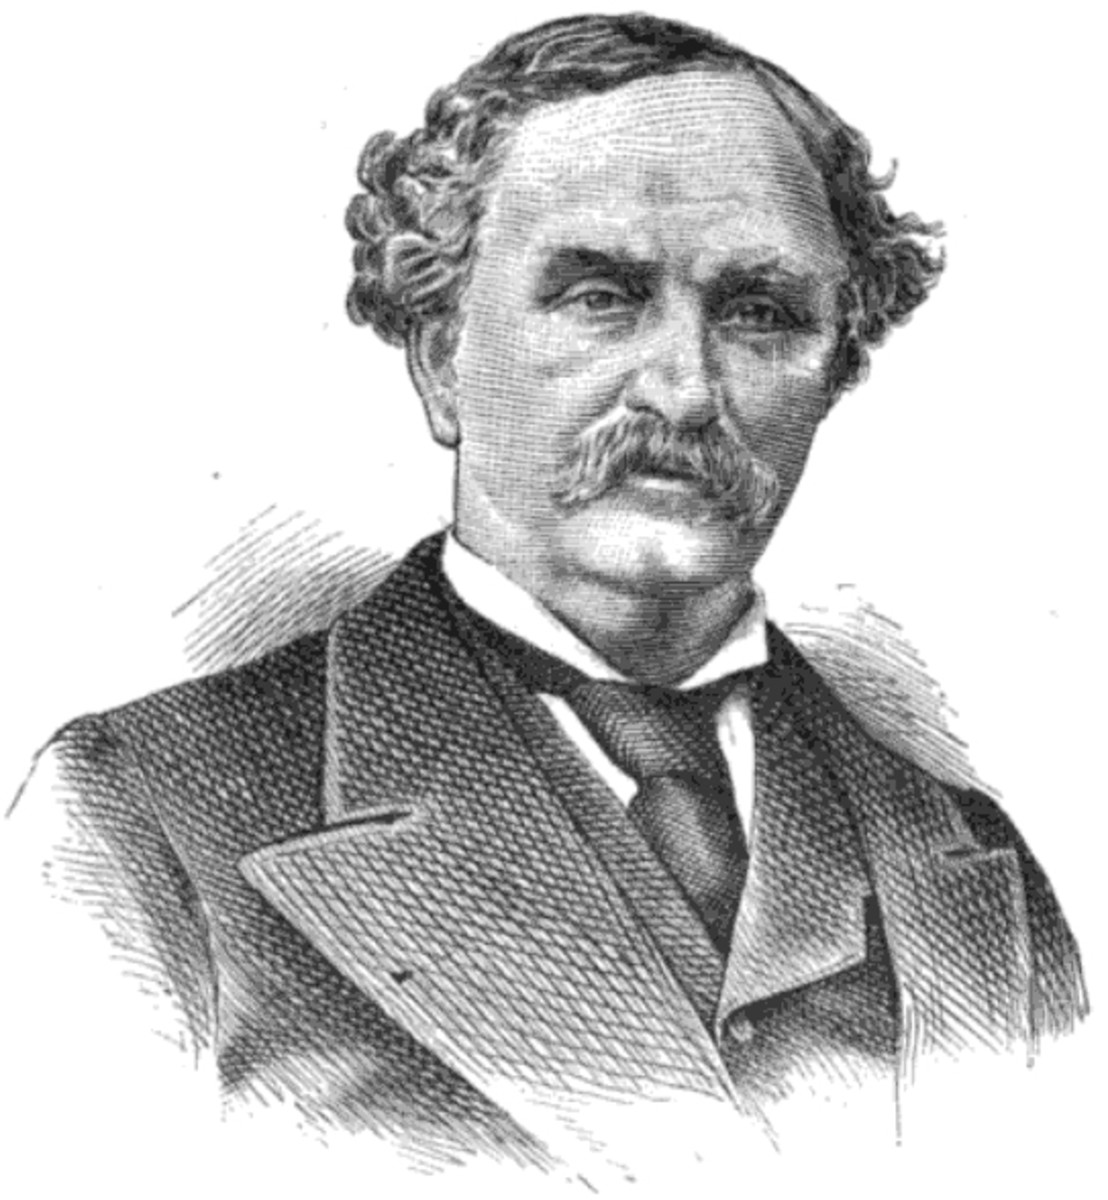 Confederate General and Kentucky Senator John Stuart Williams who co-founded Naples, along with Louisville businessman Walter N. Haldeman.  Williams died in Mount Sterling in 1898 and was interred in Winchester Cemetery.